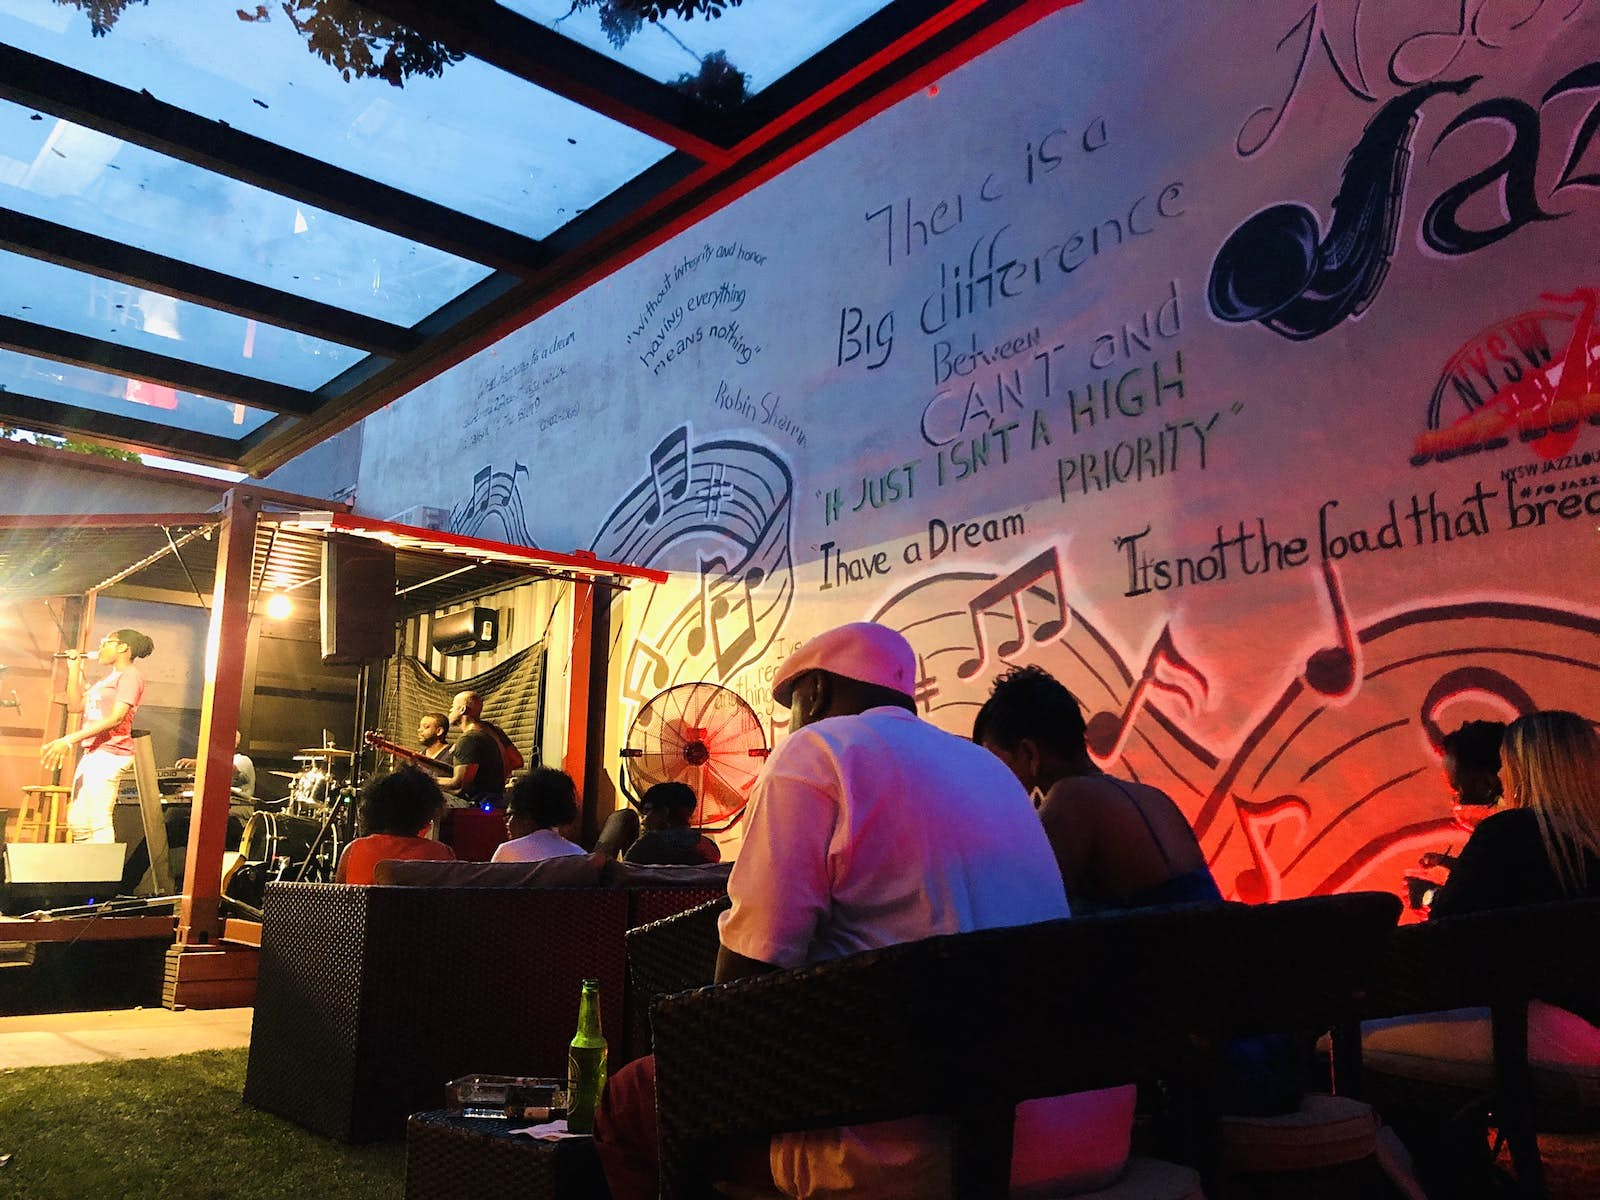 A side view of a jazz singer on the stage at NYSW Jazz Lounge. A perspex roof covers the stage and seating area next to it as patrons drink and enjoy the music. The wall next to them is covered in graffiti.